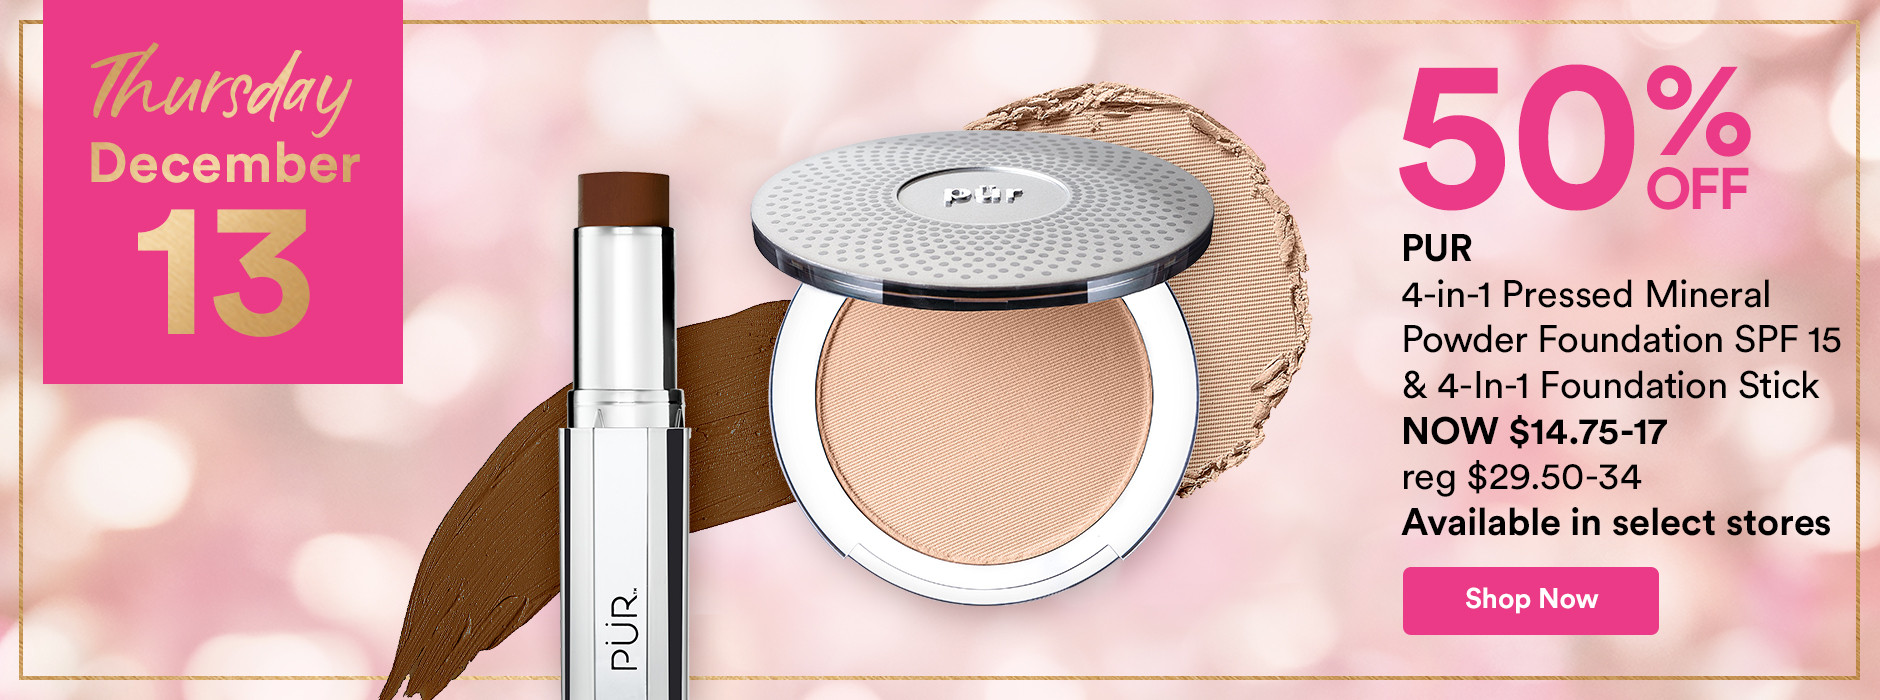 Pur 4-in-1 Pressed Mineral Powder Foundation SPF 15 + 4-In-1 Foundation Stick Now 50% Off